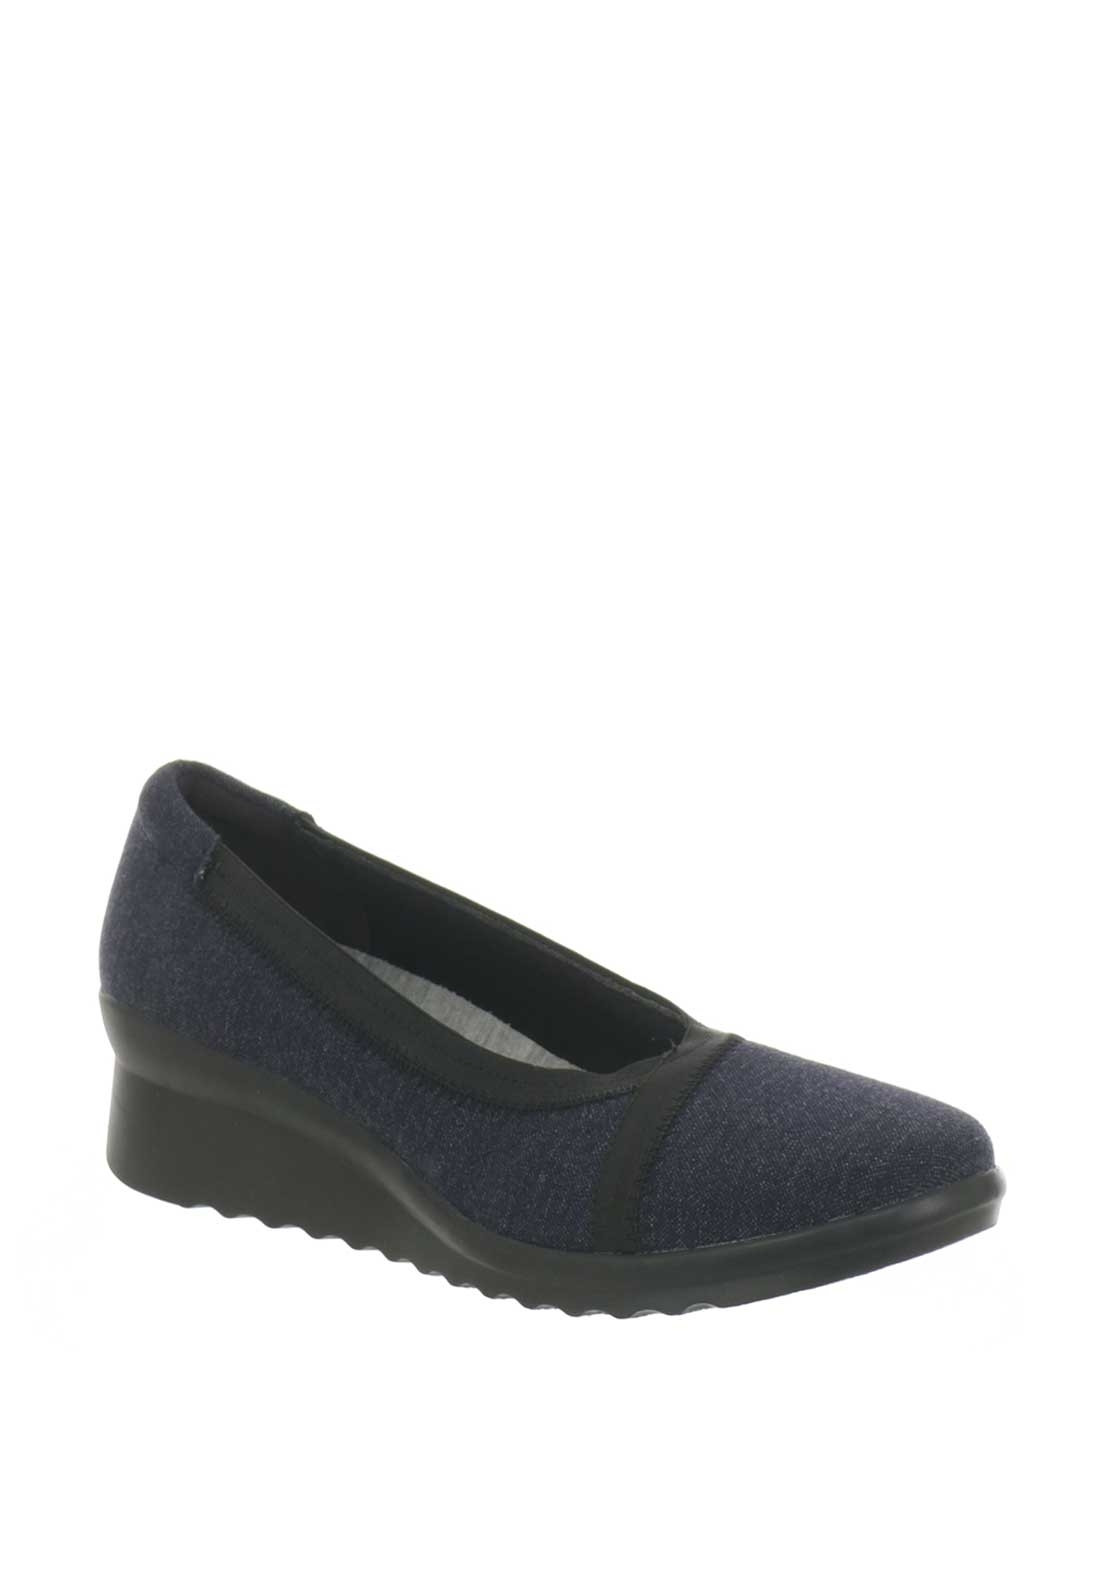 0a54bec228941 Clarks Womens Caddell Dash Low Wedge Pump, Navy. Be the first to review  this product